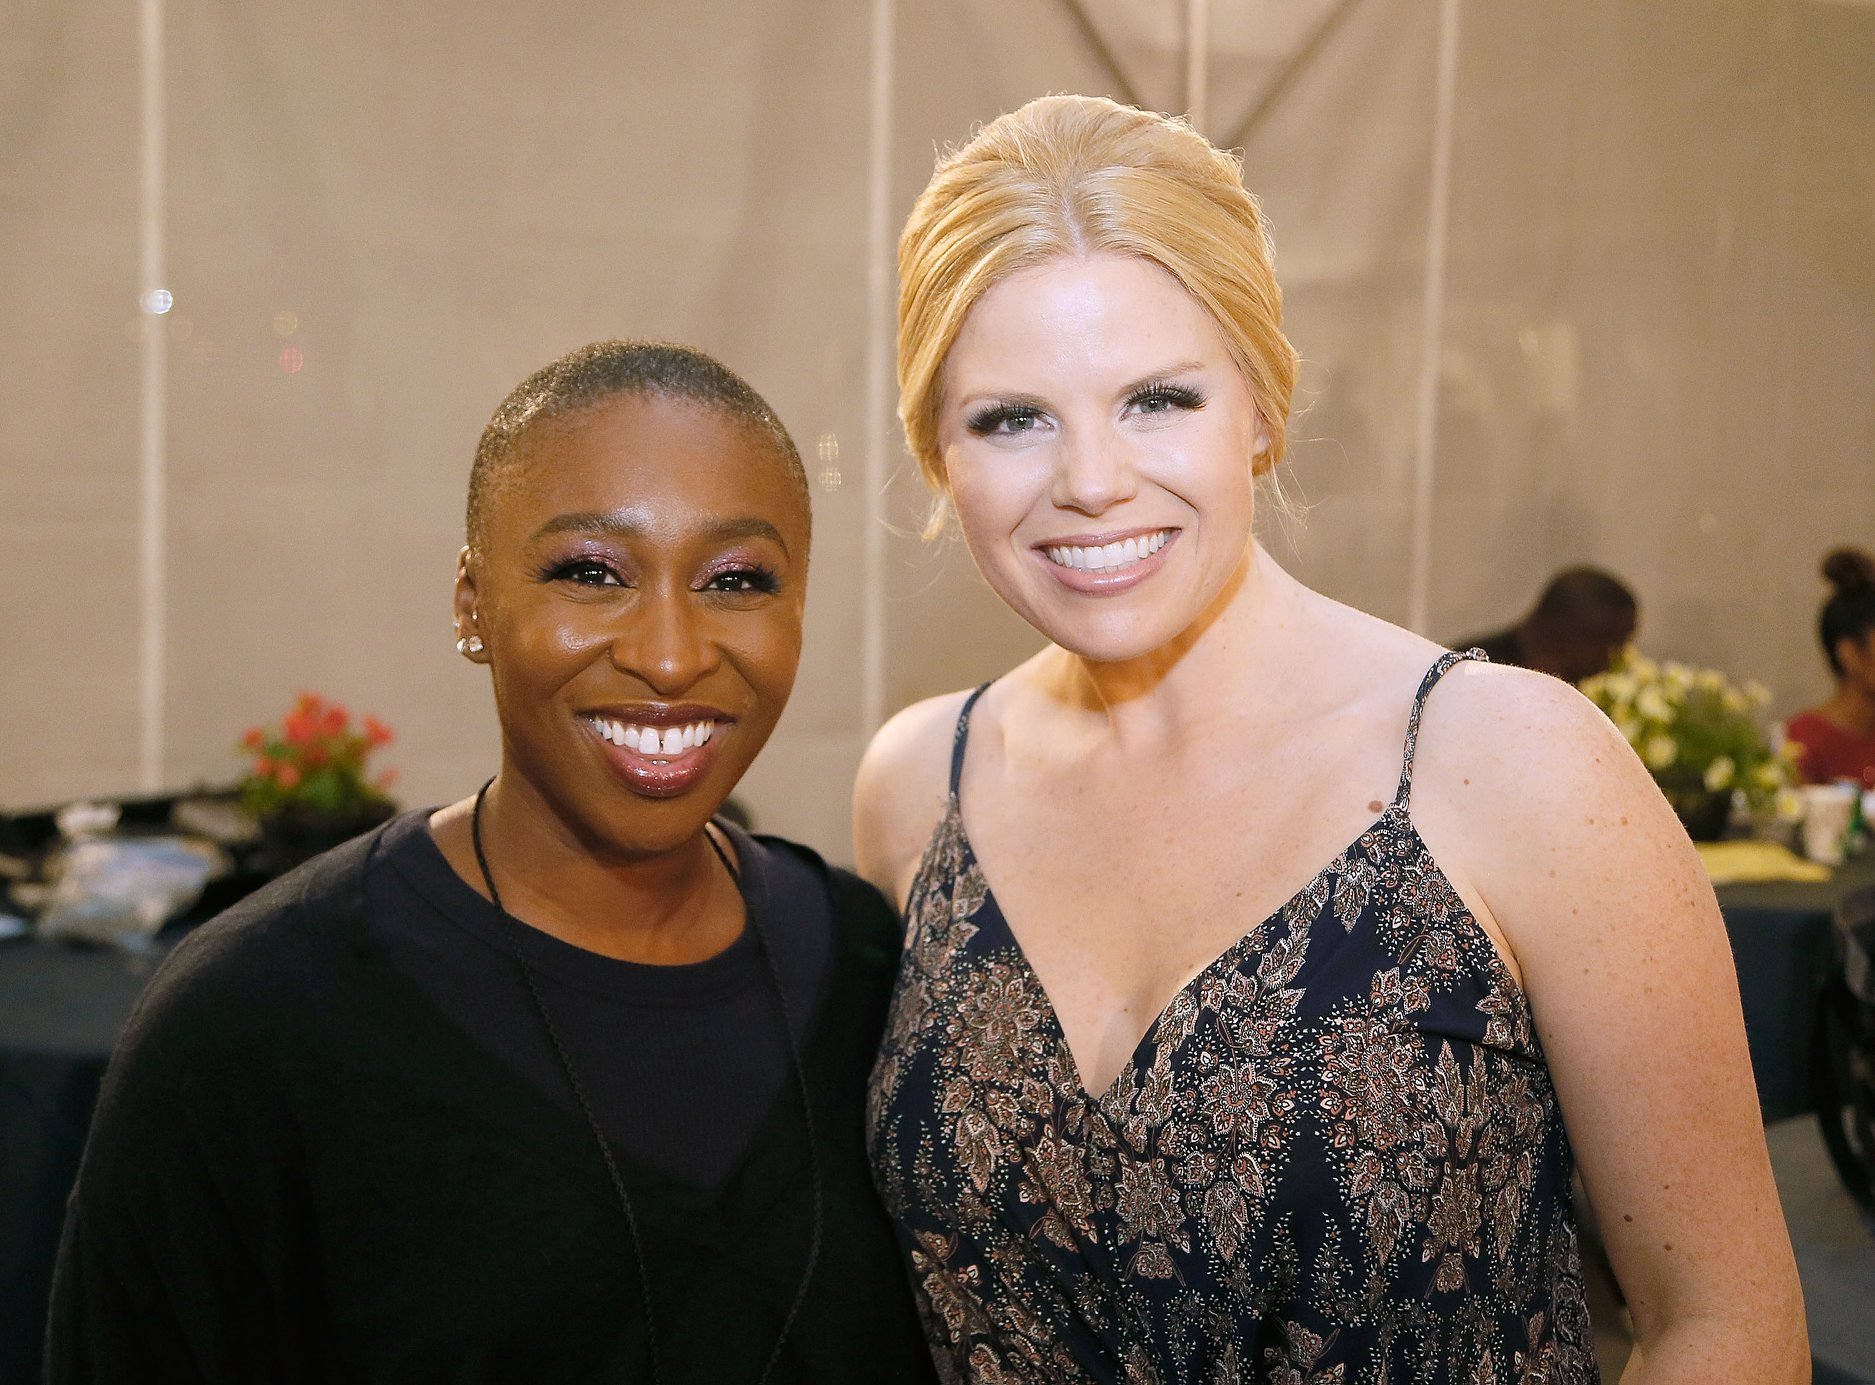 Singers Cynthia Erivo and Megan Hilty backstage rehearsing for the 2018 <em>National Memorial Day Concert</em>.